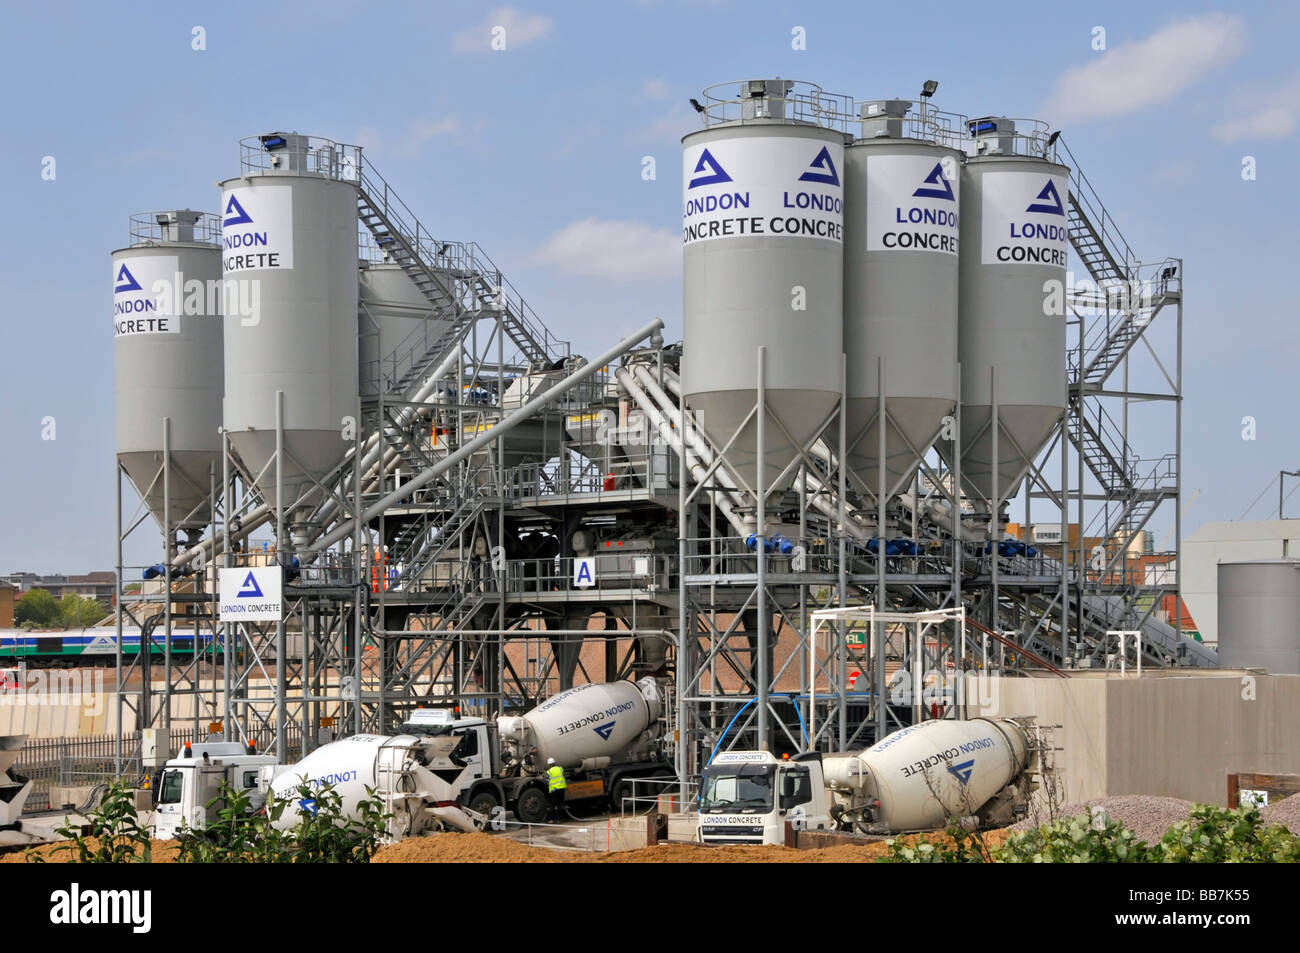 Ready Mix Plants : Lorry produce stock photos images